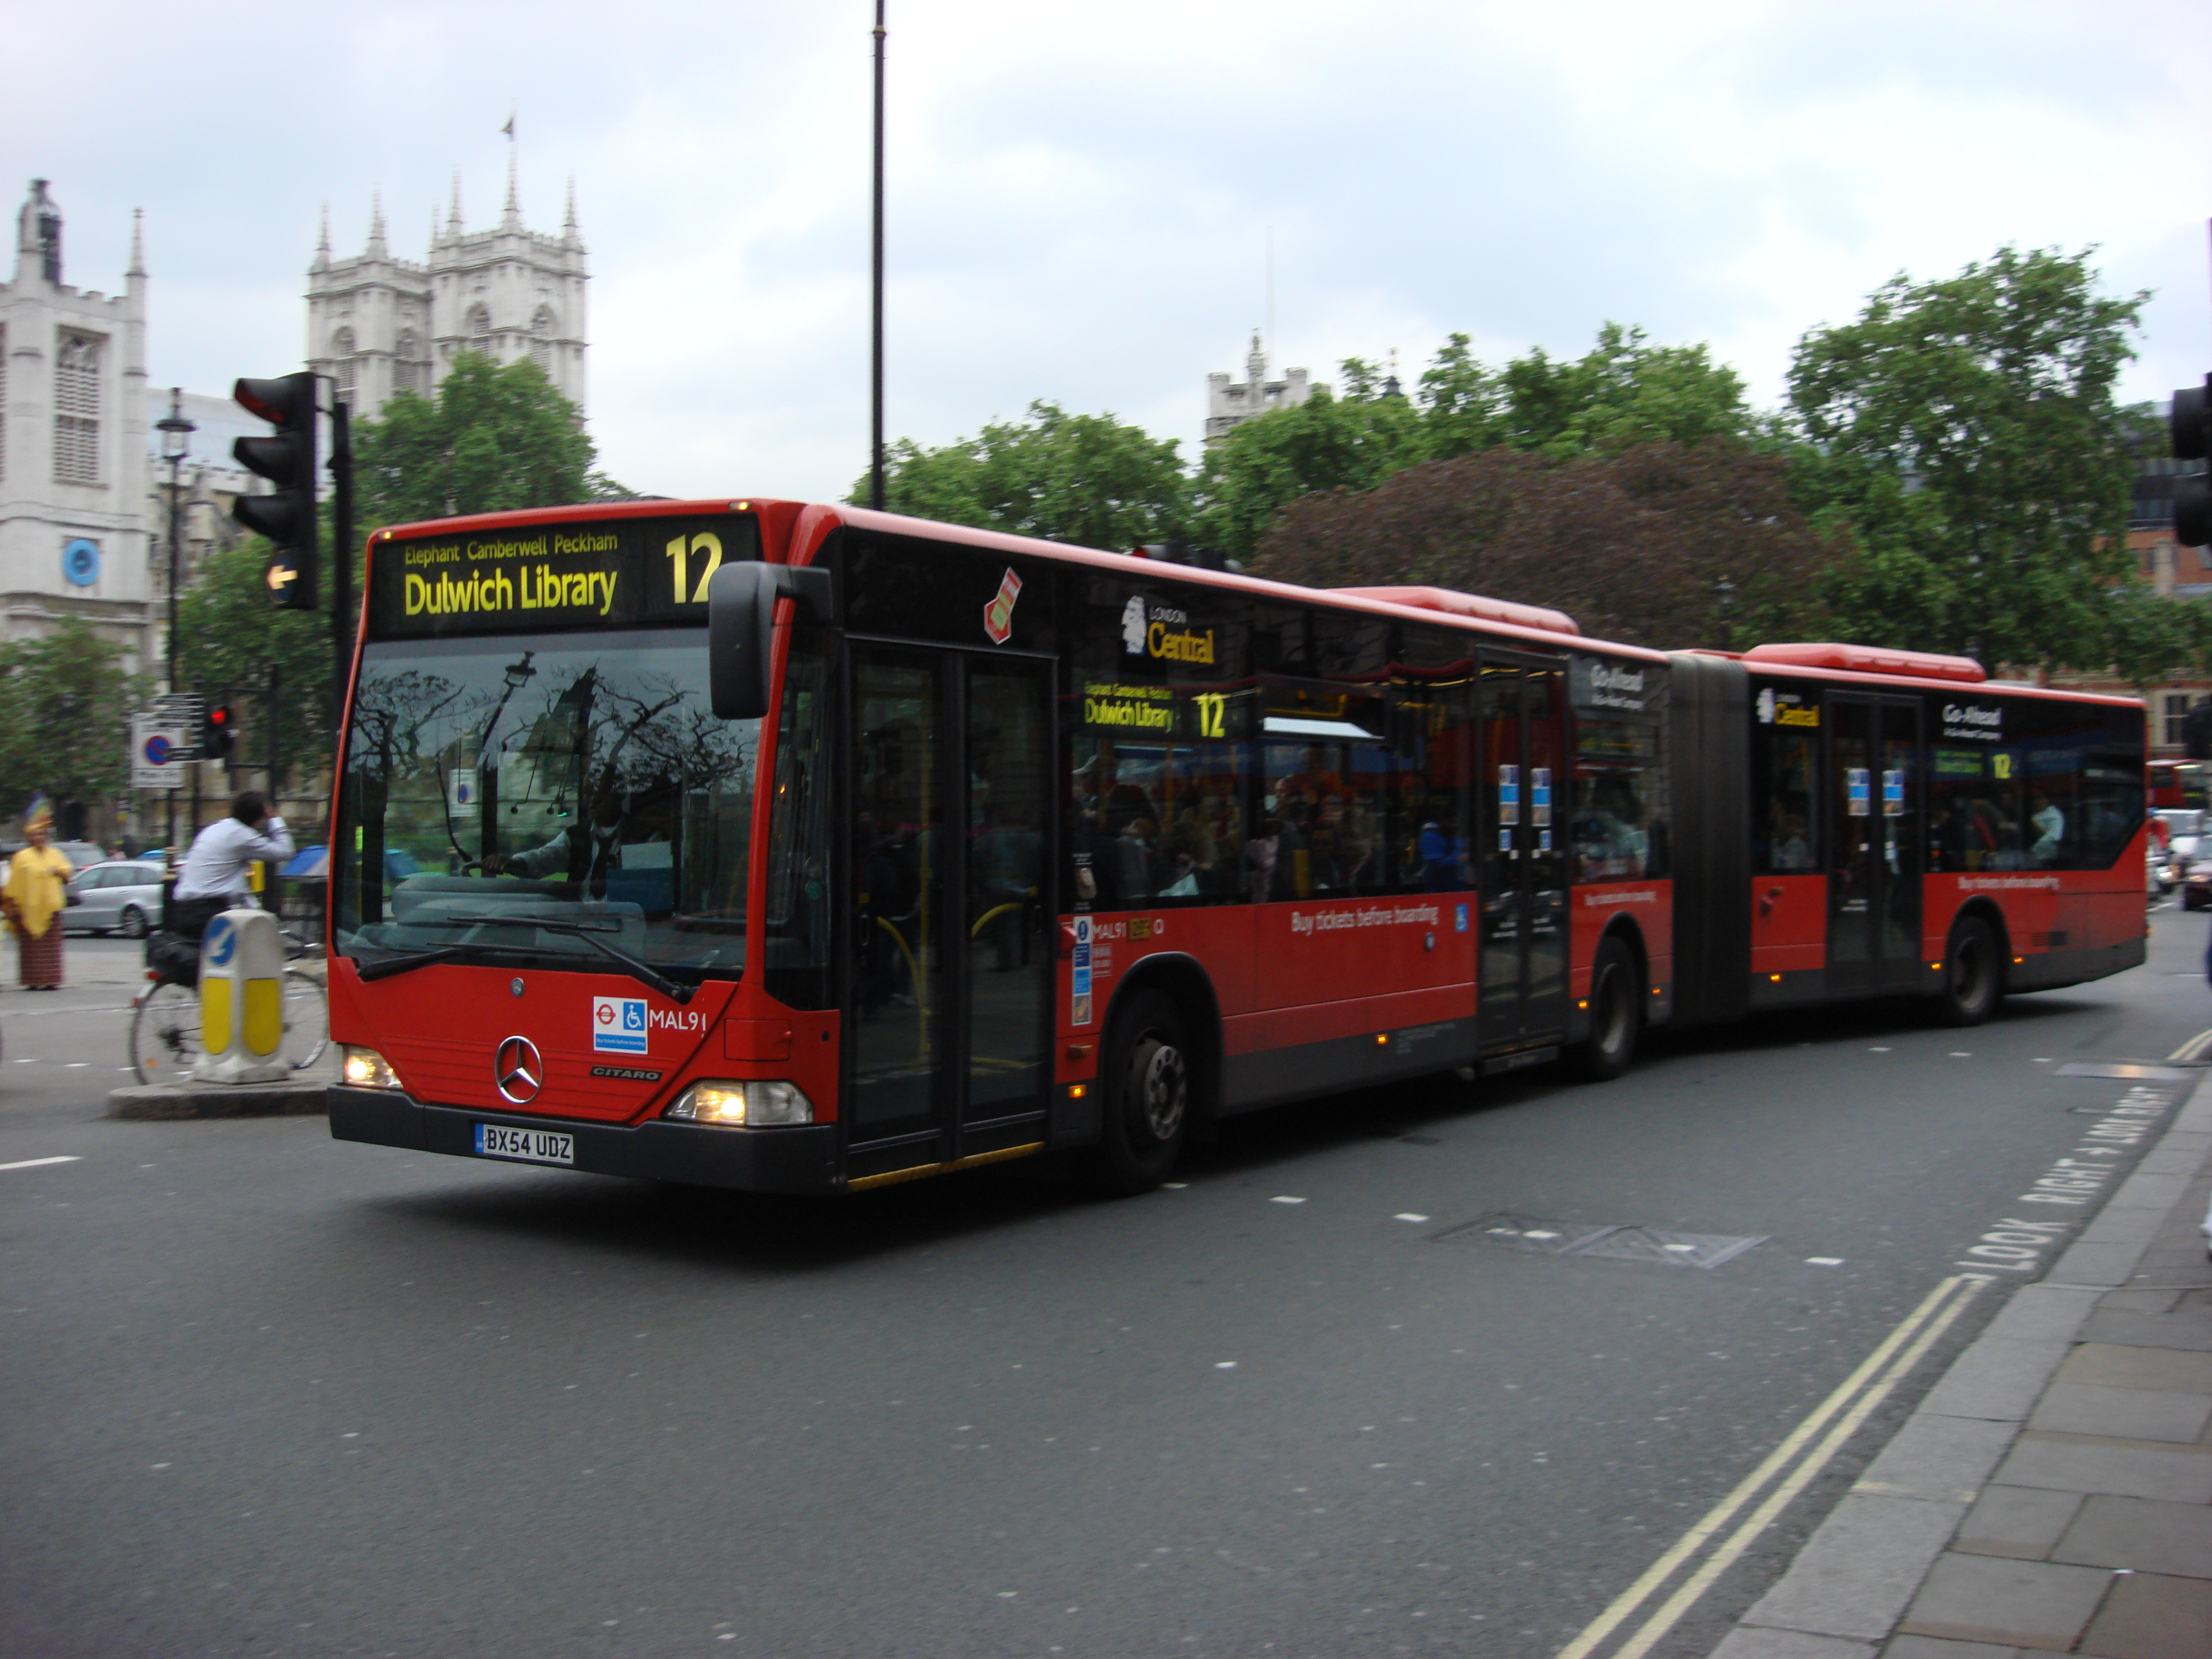 file:london bus route 12 - wikimedia commons